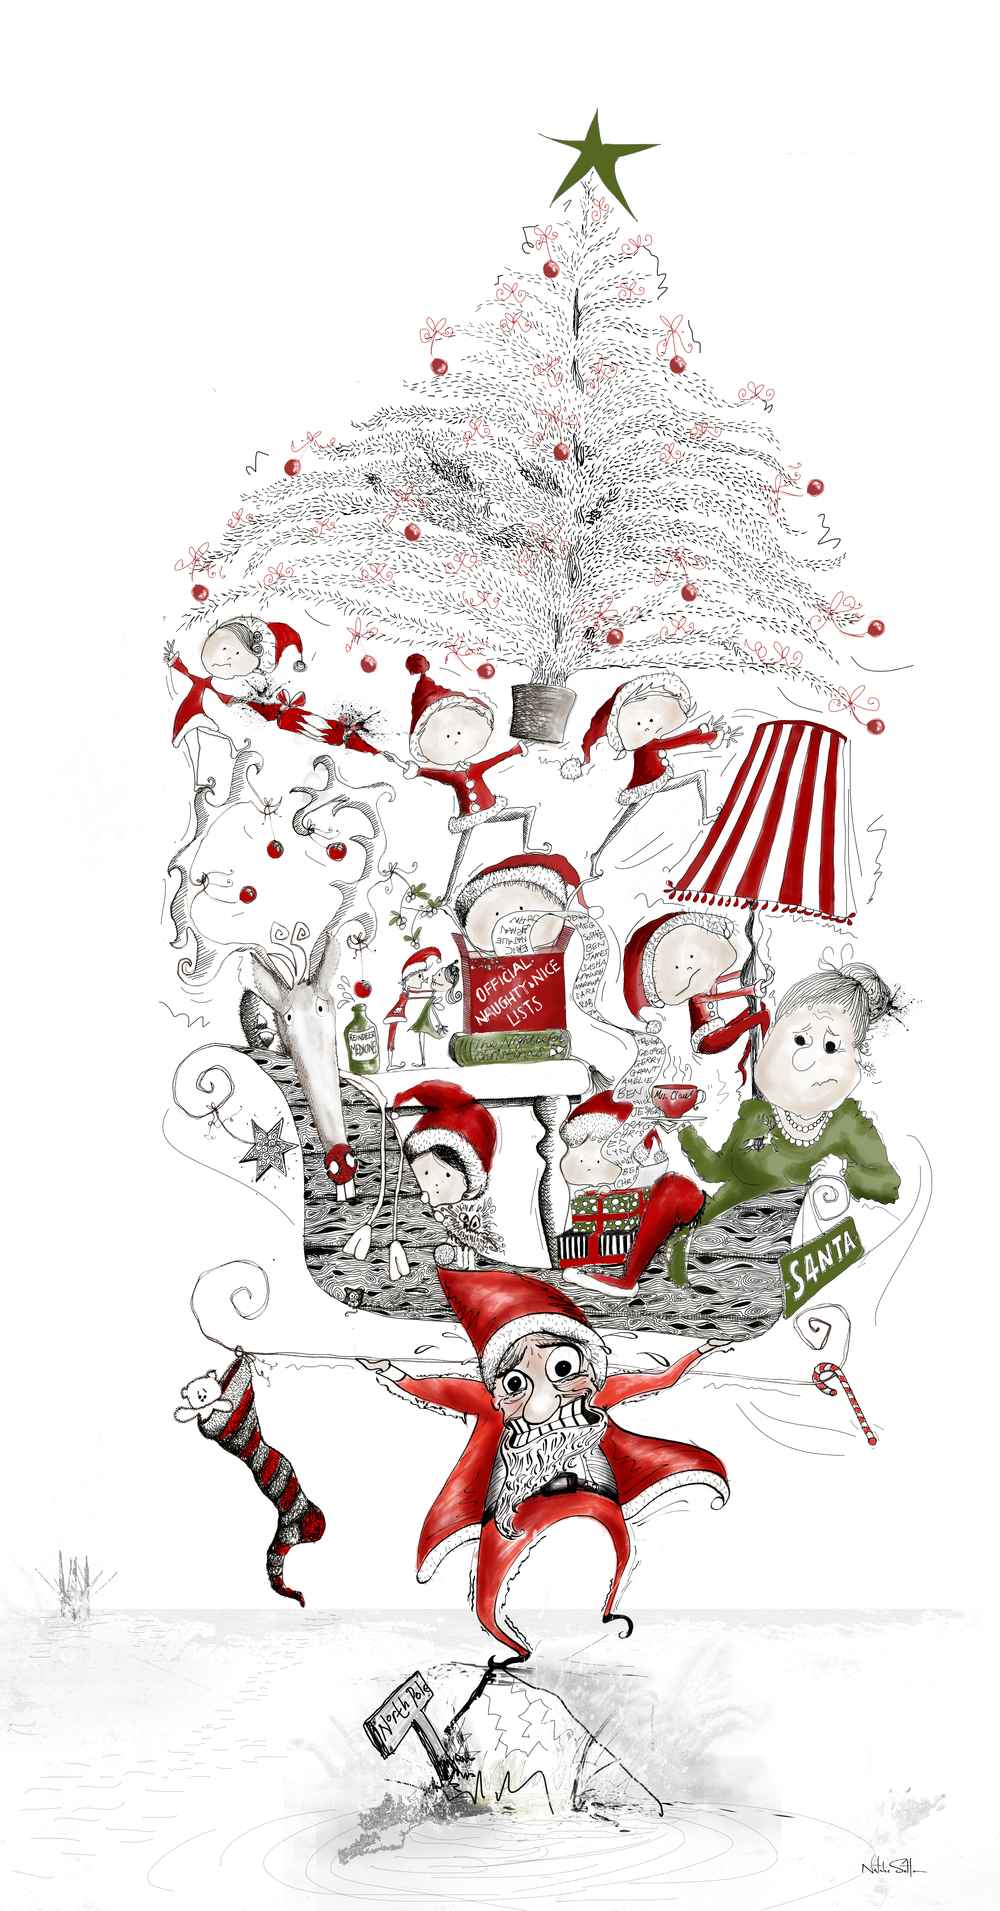 Greenpeace_Save Santas Home -The Last Piece of Ice by Illustrator & Art Director Natalie Sutton